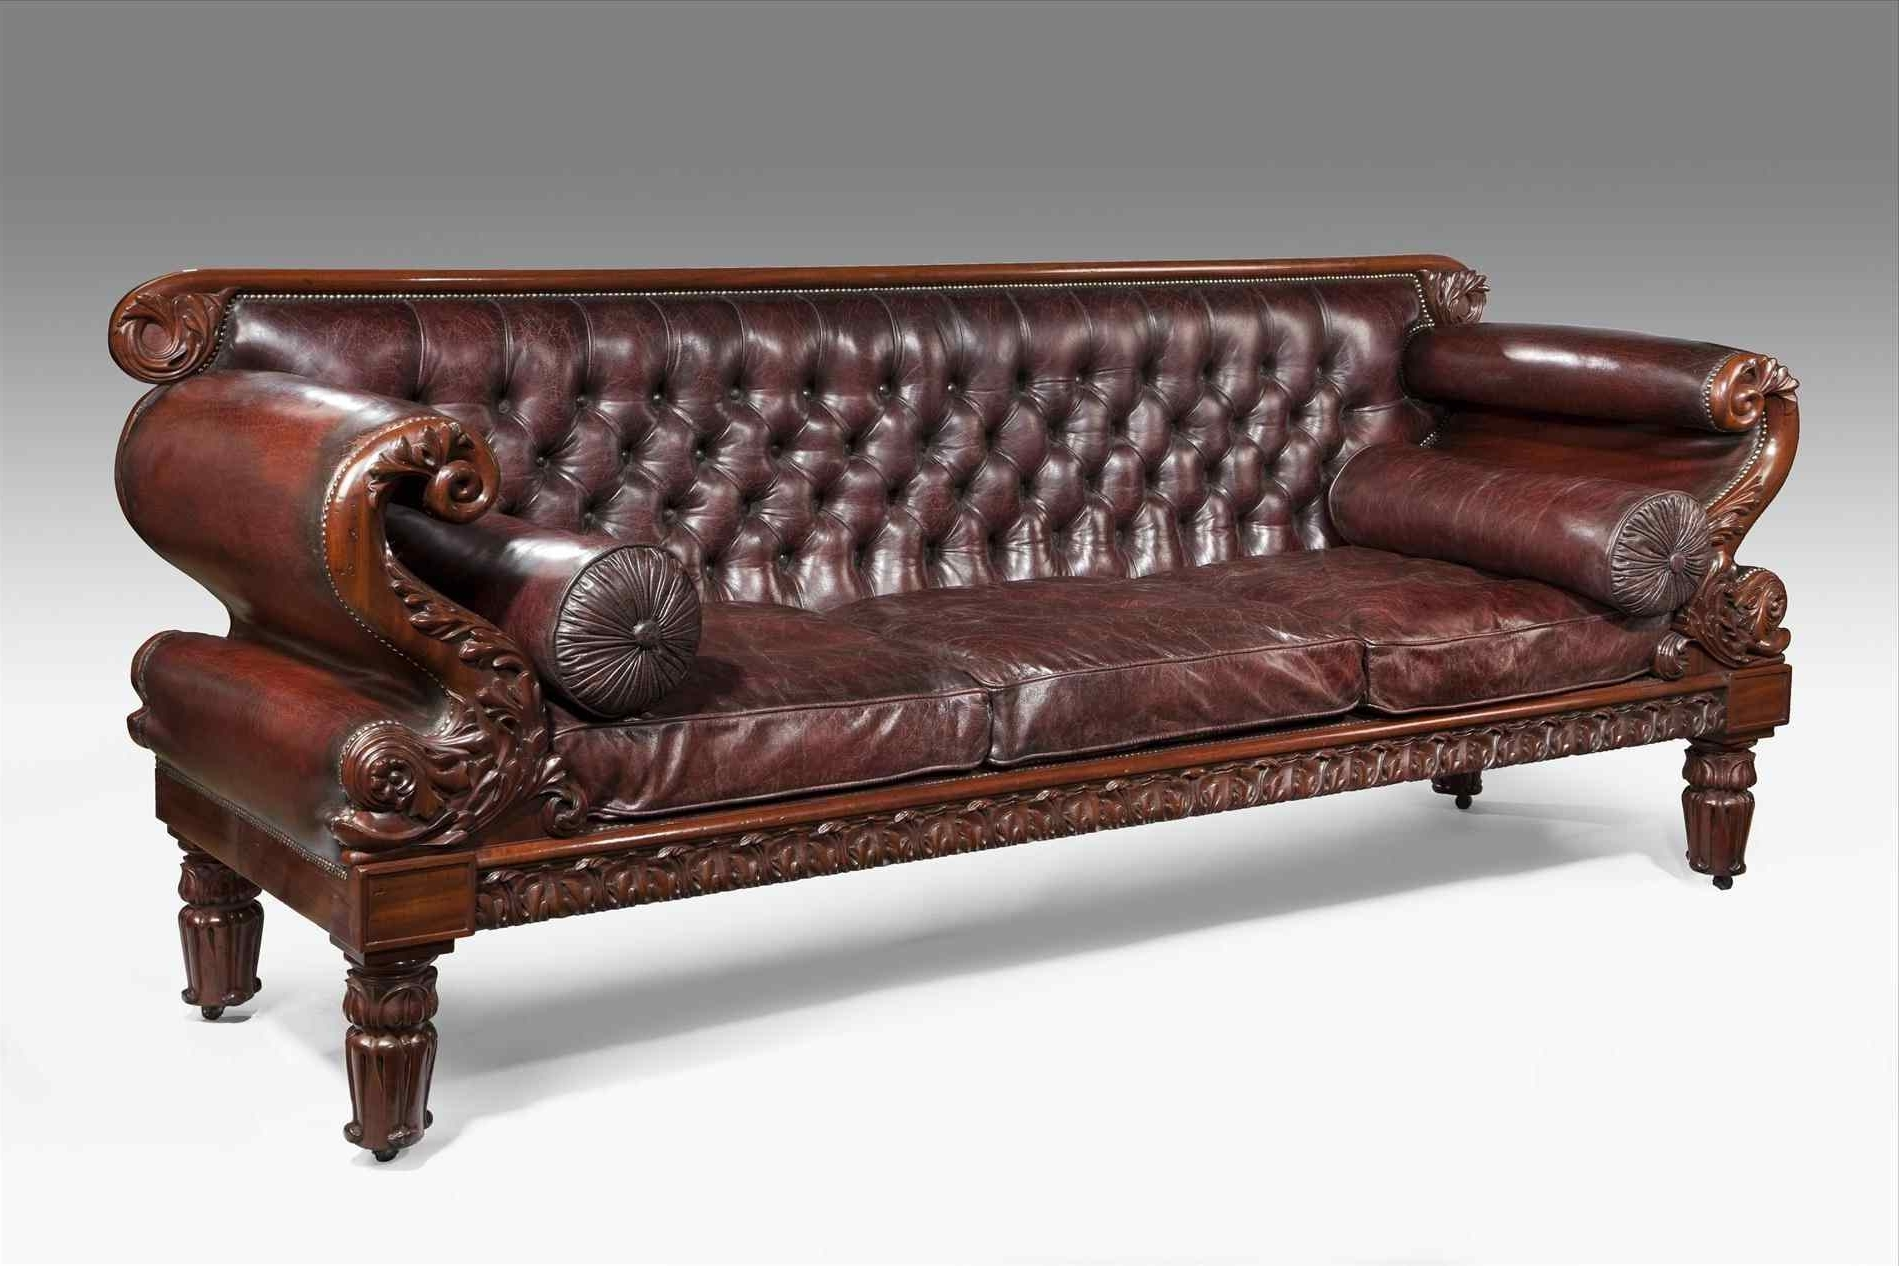 Sofa : Modern Antique Sofa Vintage High Back Armchair Chairs Ideas In Favorite Antique Sofas (View 16 of 20)